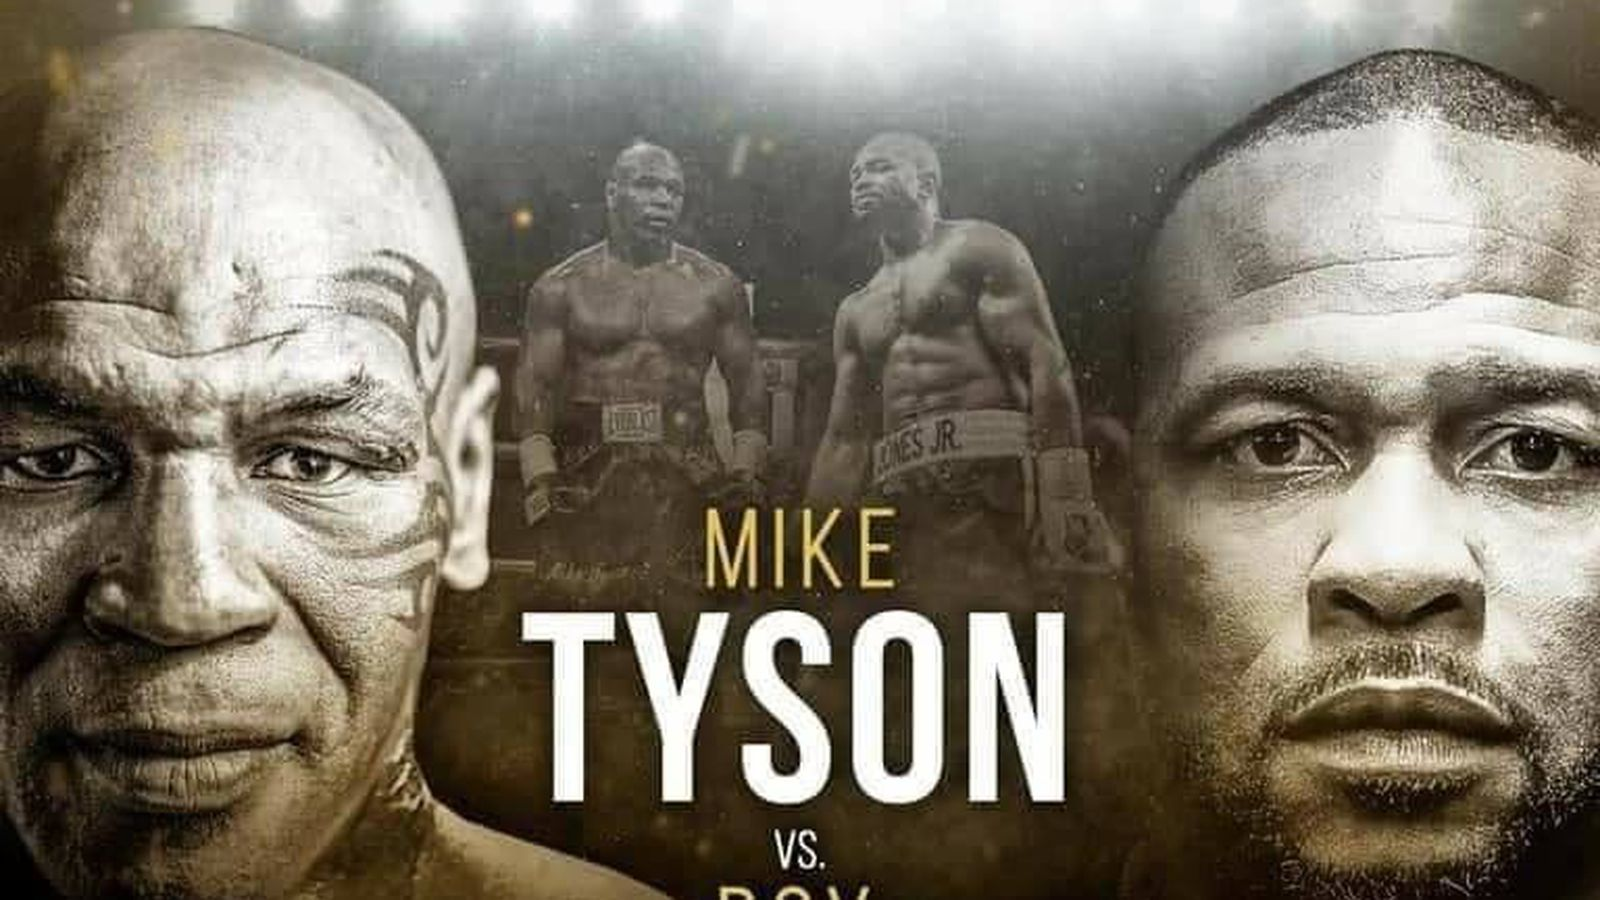 Mike Tyson Vs Roy Jones Jr Fight Card Full Lineup For Nov 28 Boxing Ppv In Los Angeles Mmamania Com